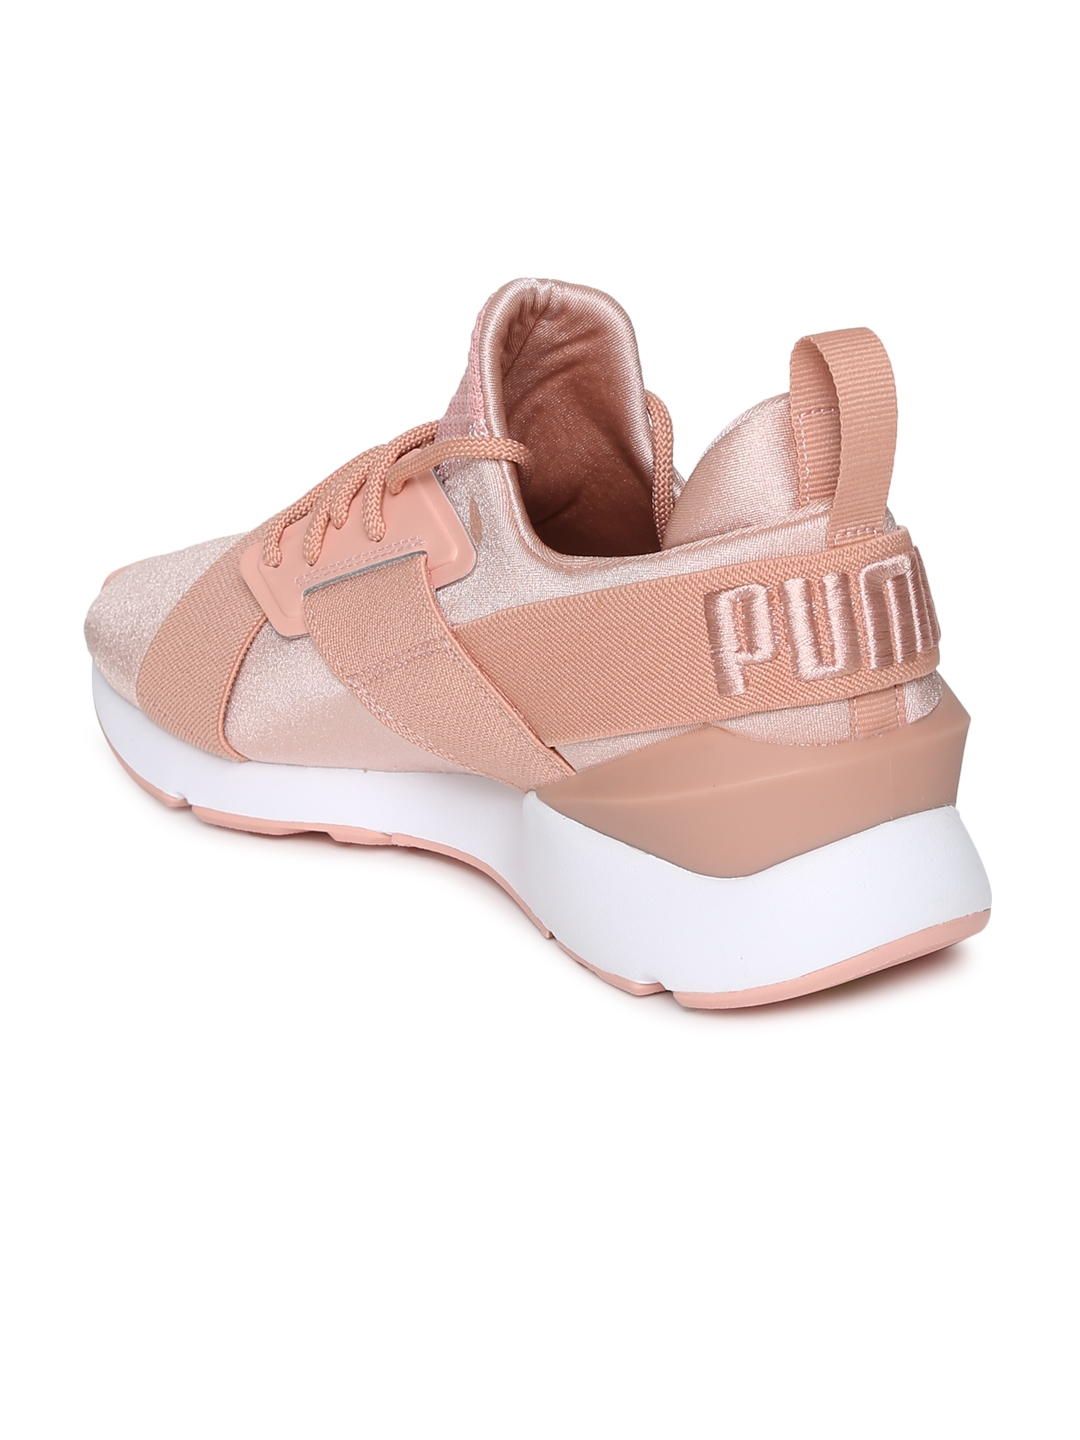 822bfec1135353 Buy Puma Women Pink Muse Satin EP Sneakers - Casual Shoes for Women ...